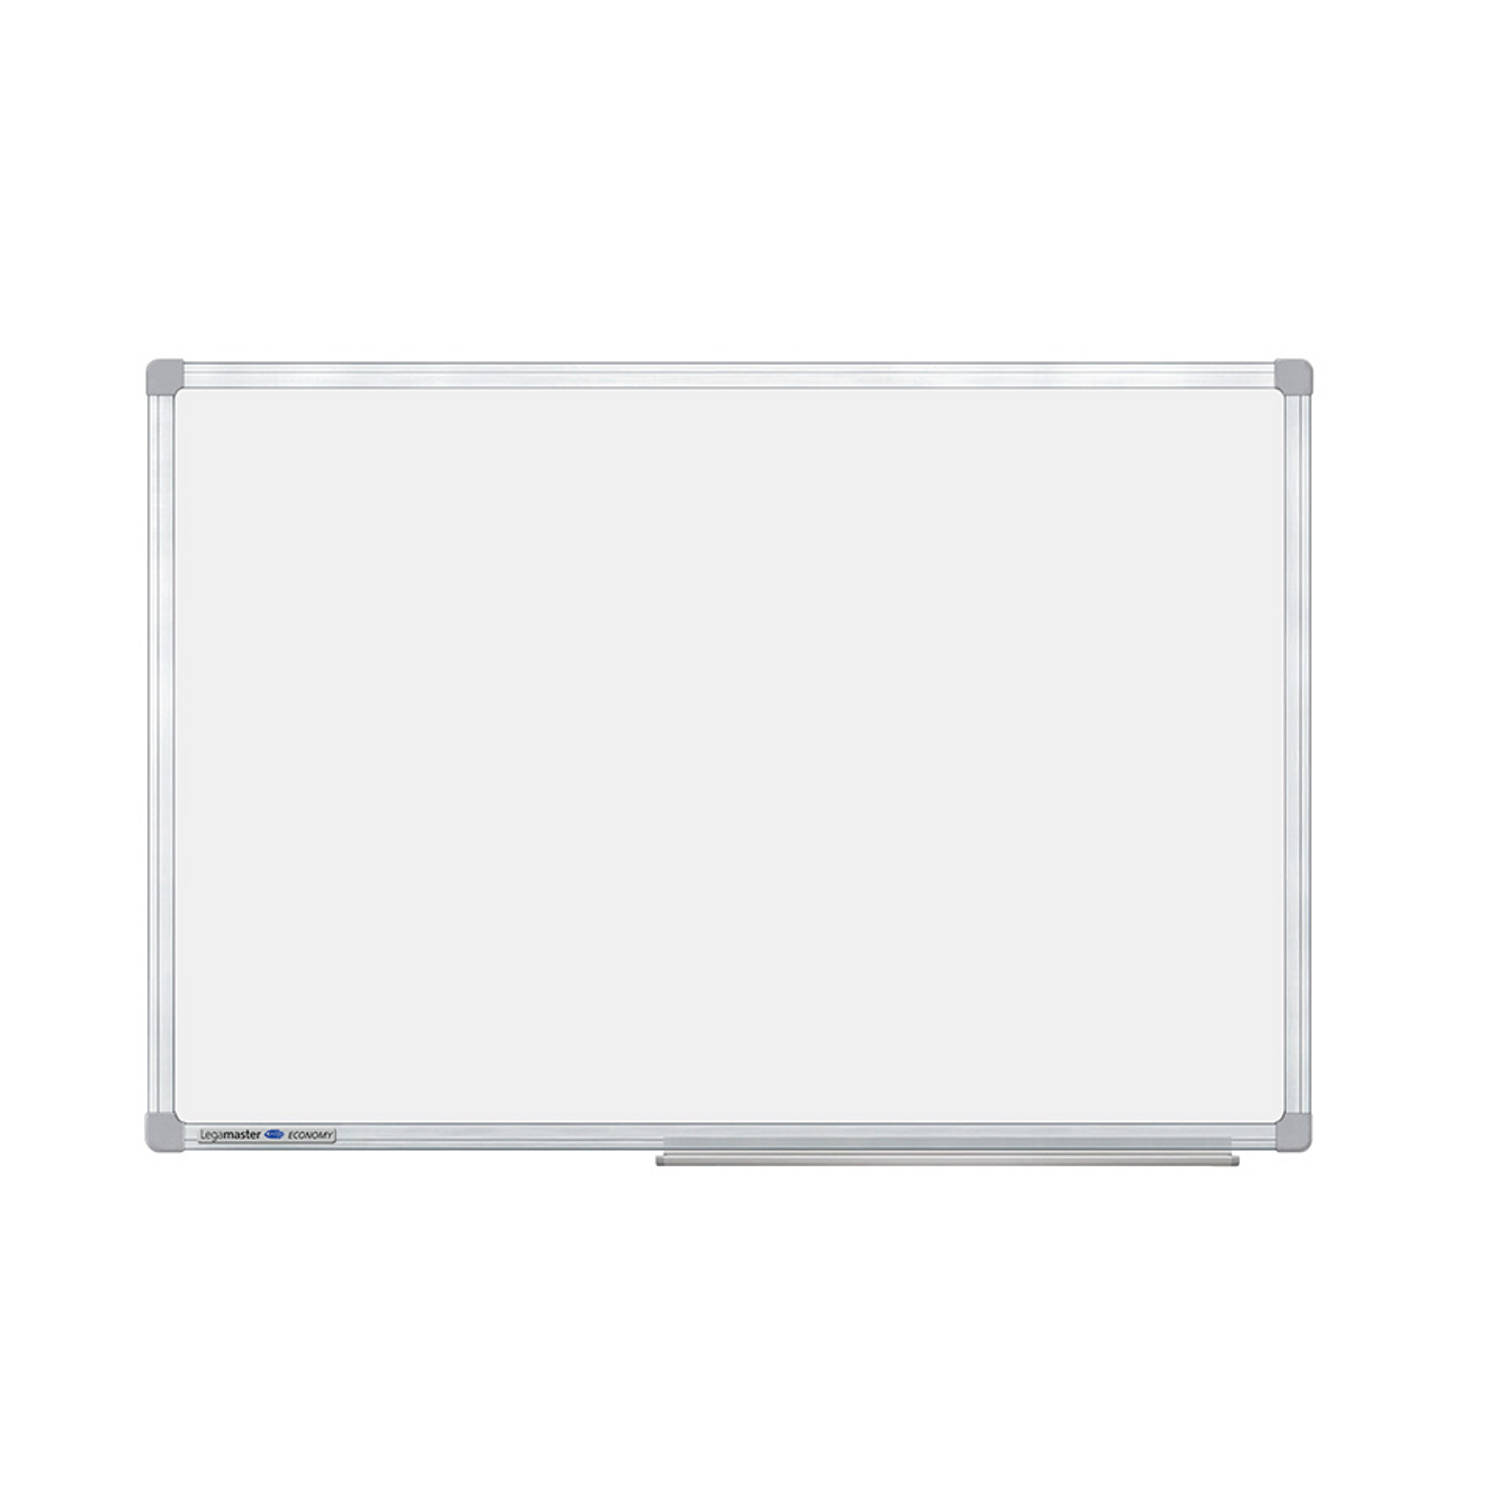 Legamaster whiteboard economy - 60 x 90 cm - staal - wit